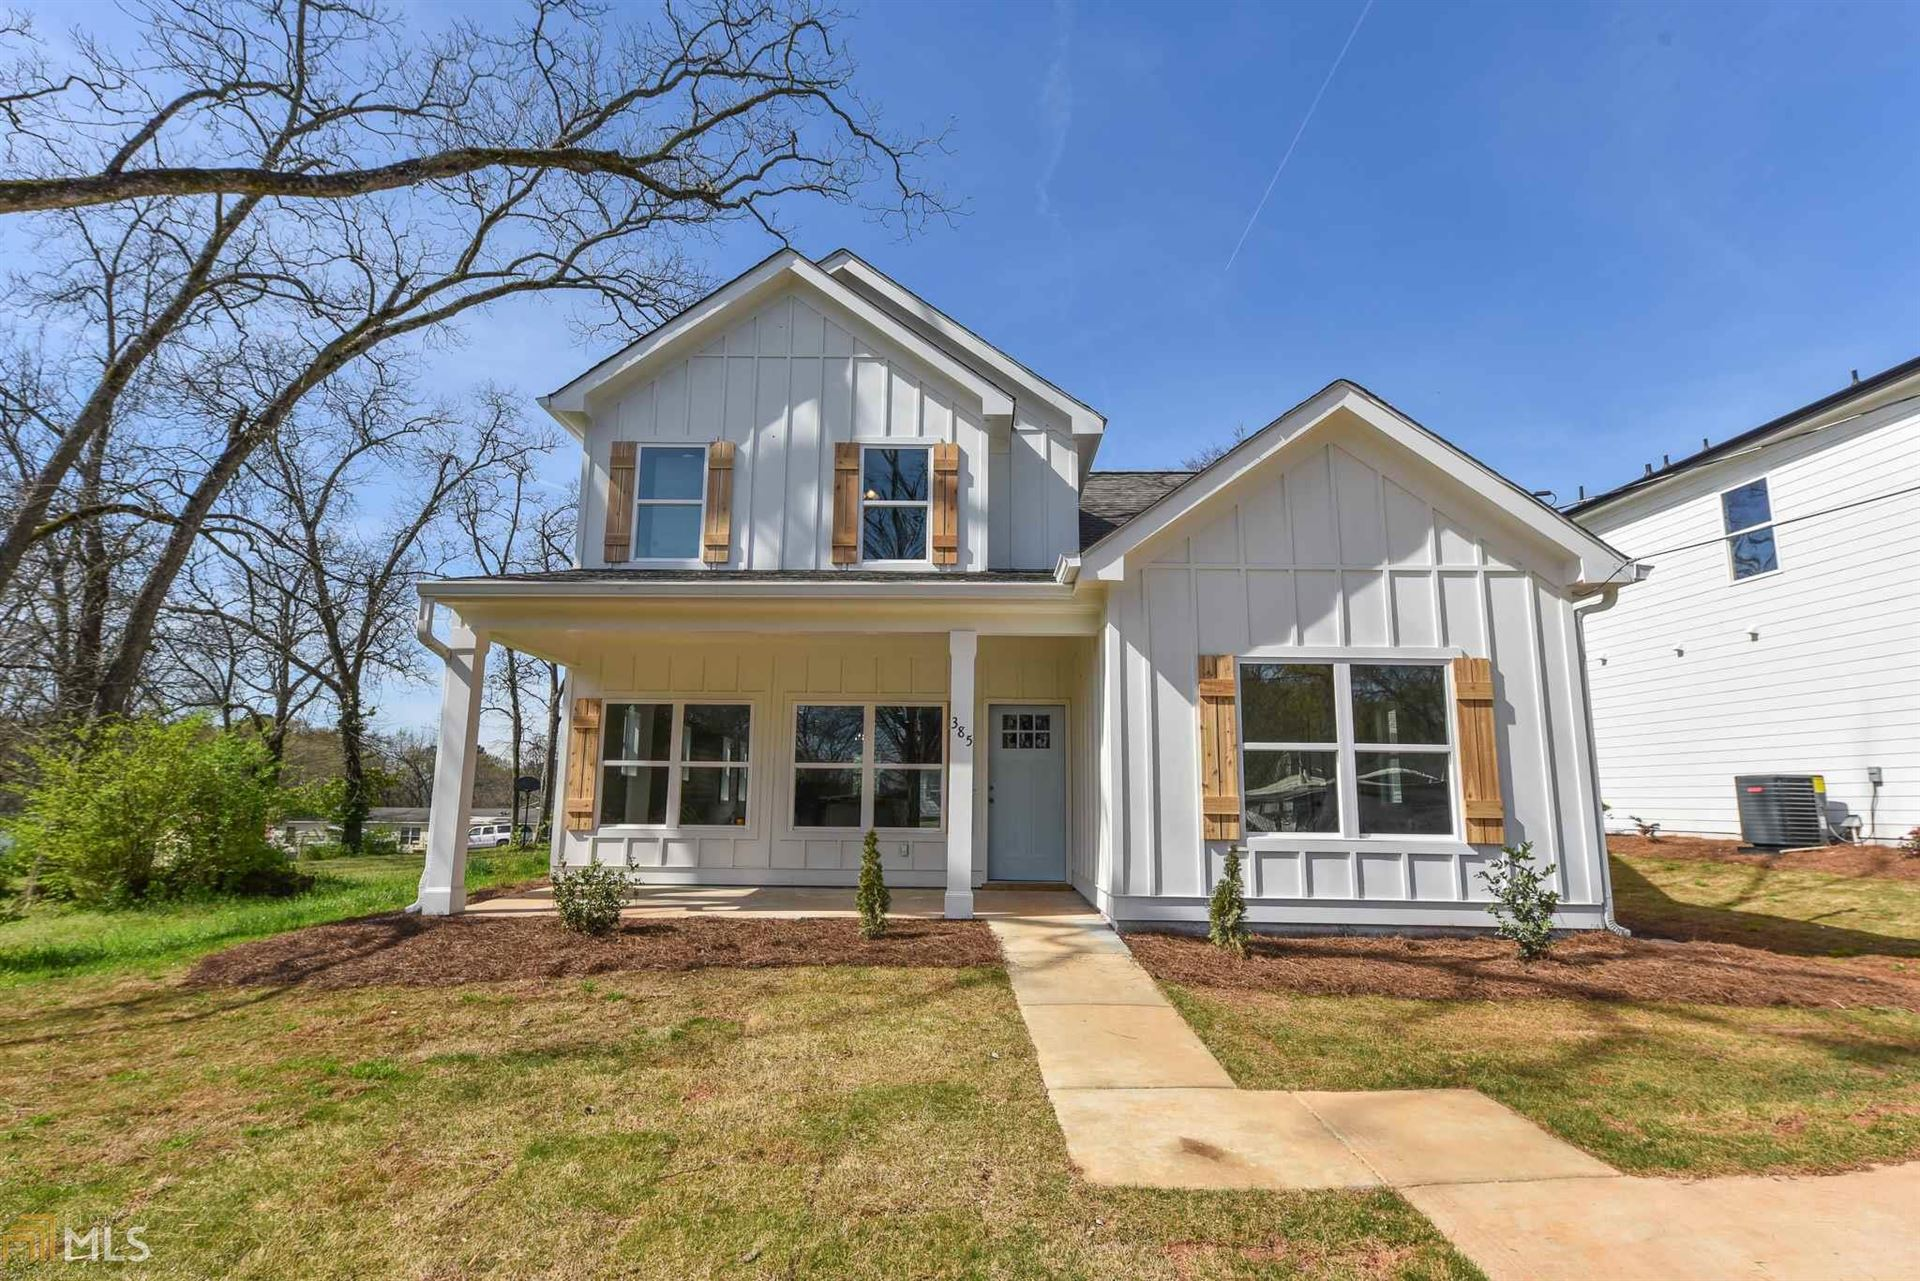 385 Rear First St, Athens, GA 30601 - #: 8758241